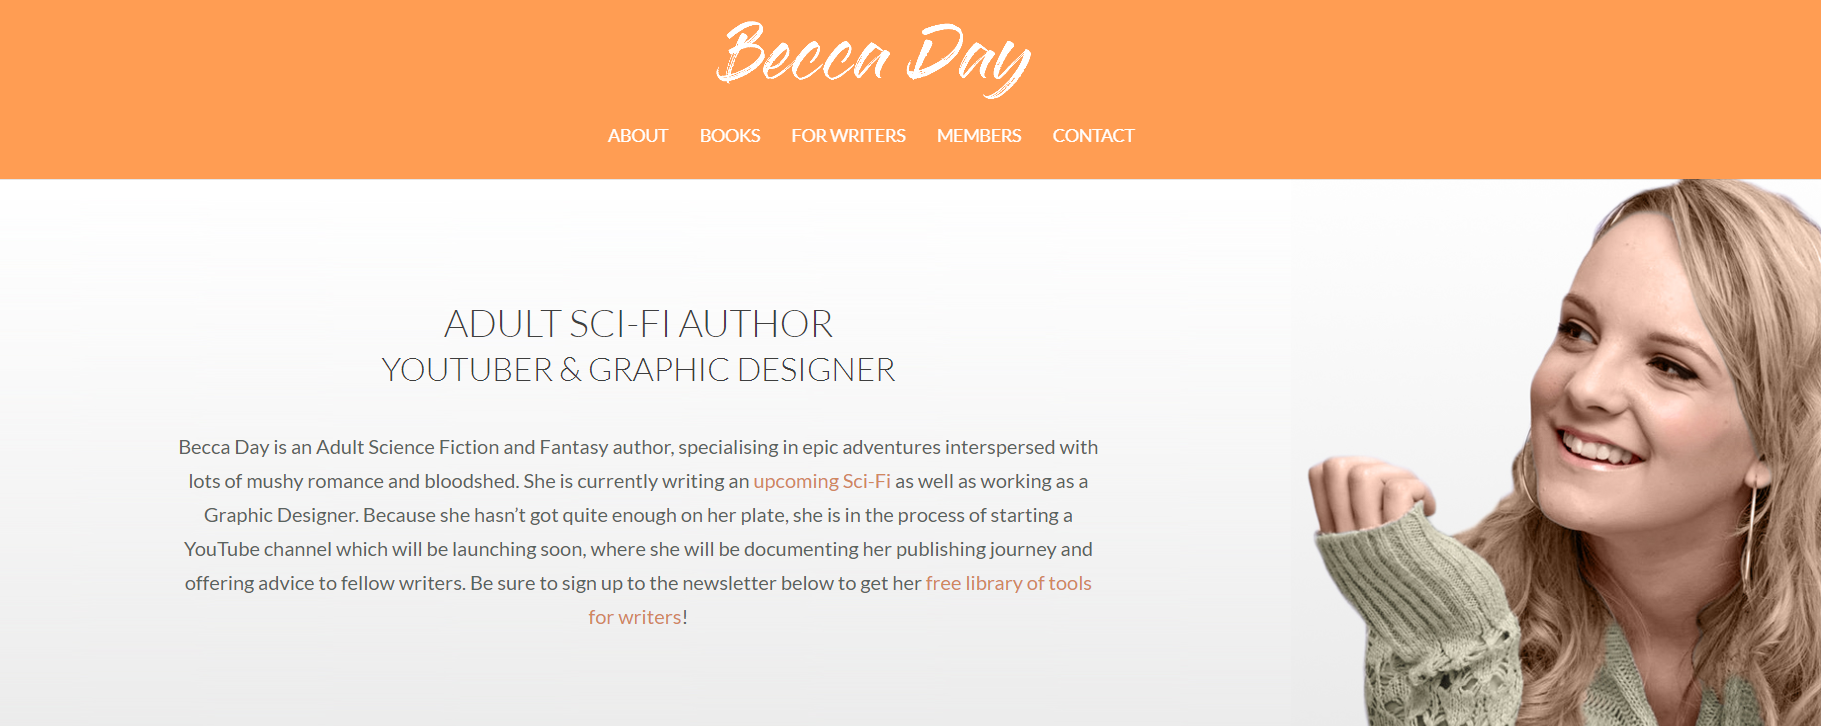 example of an author website header